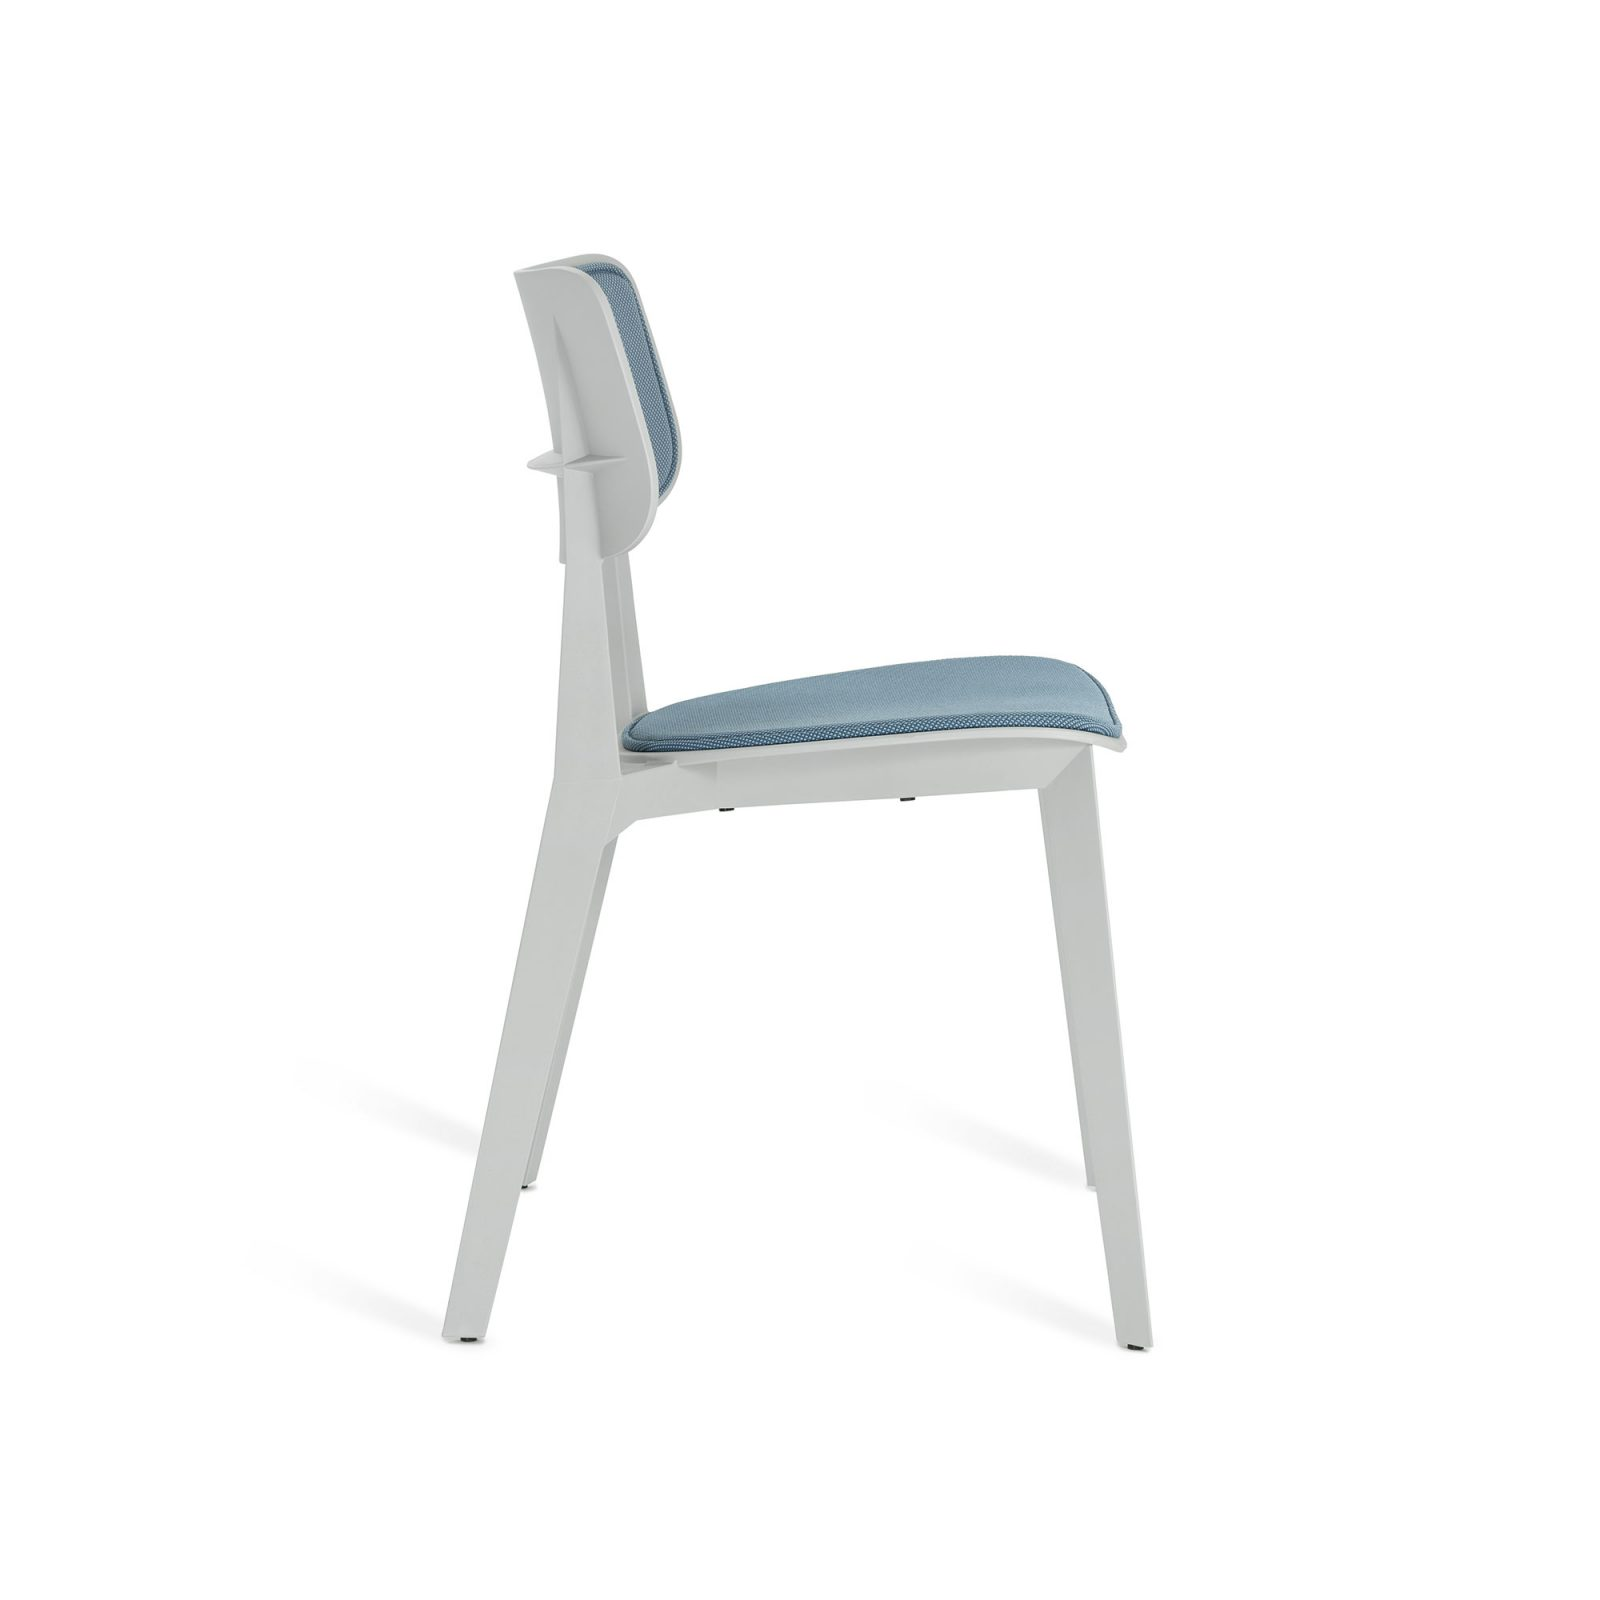 stellar-upholstered-chair-grey-4